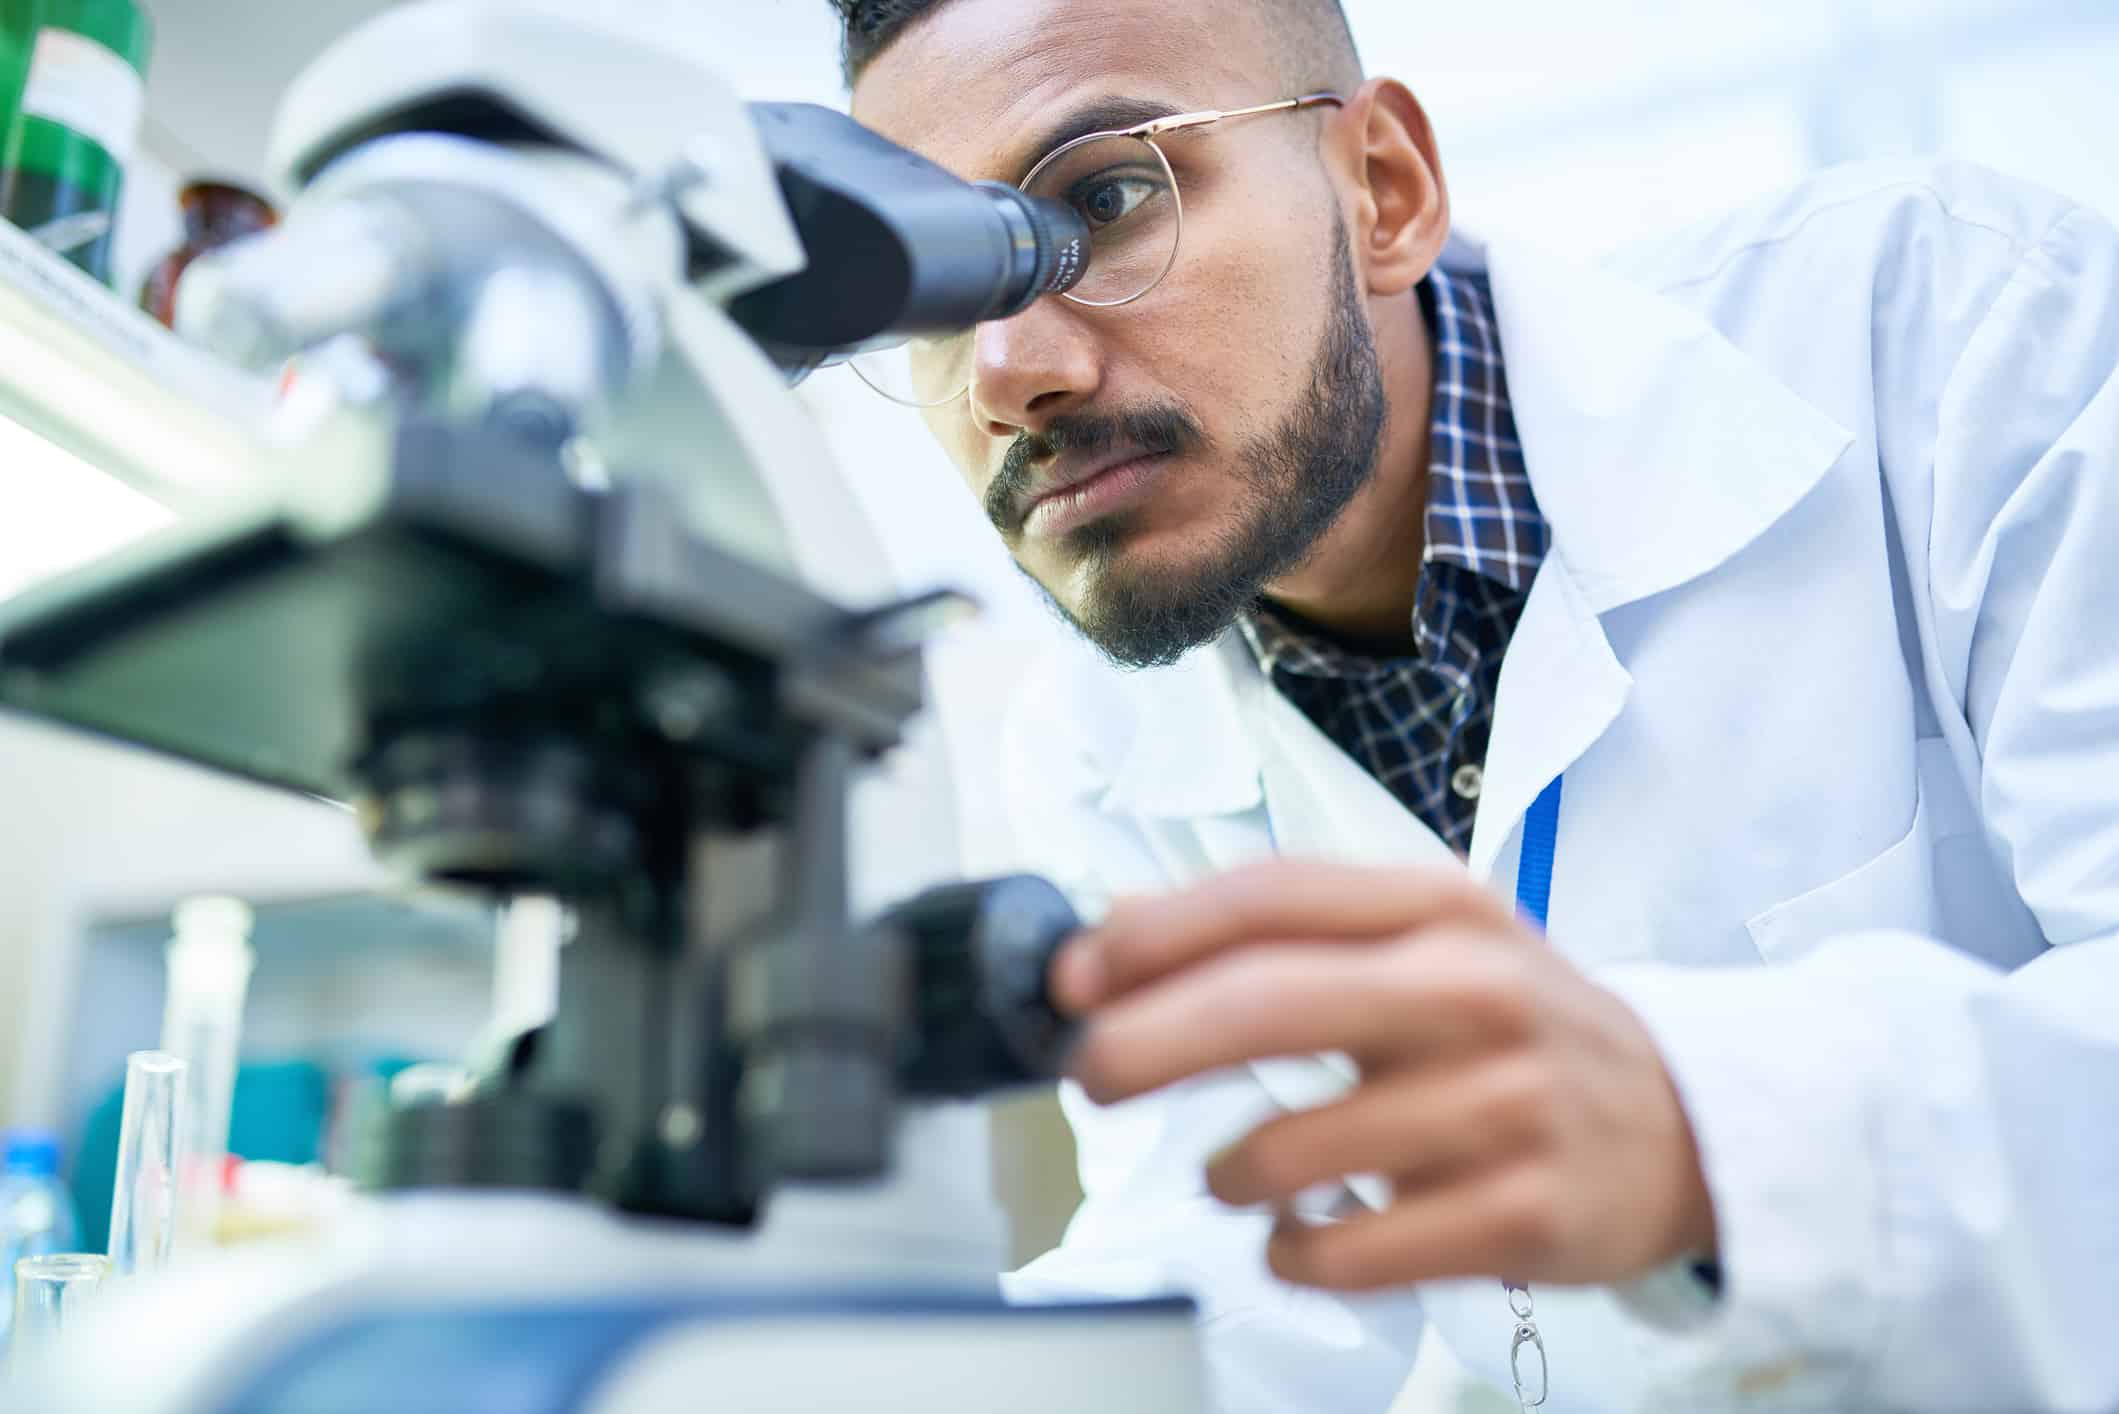 Portrait of young scientist looking in microscope while working on medical research in science laboratory.